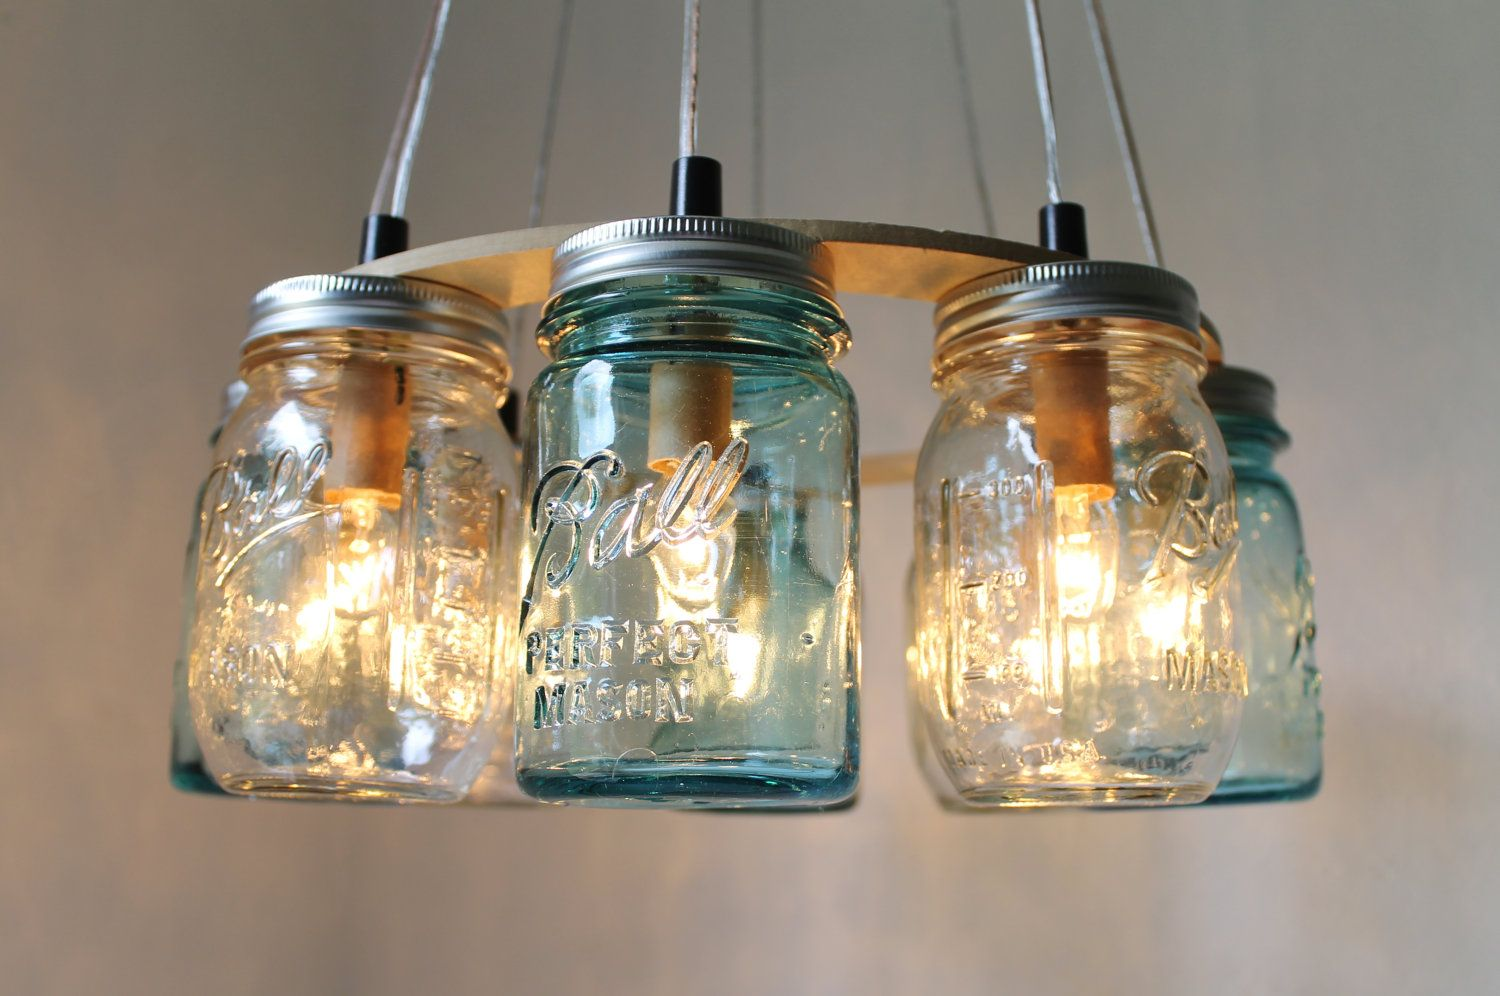 Beach House Mason Jar Chandelier Upcycled Hanging Lighting Fixture Direct Hardwire Bootsngus